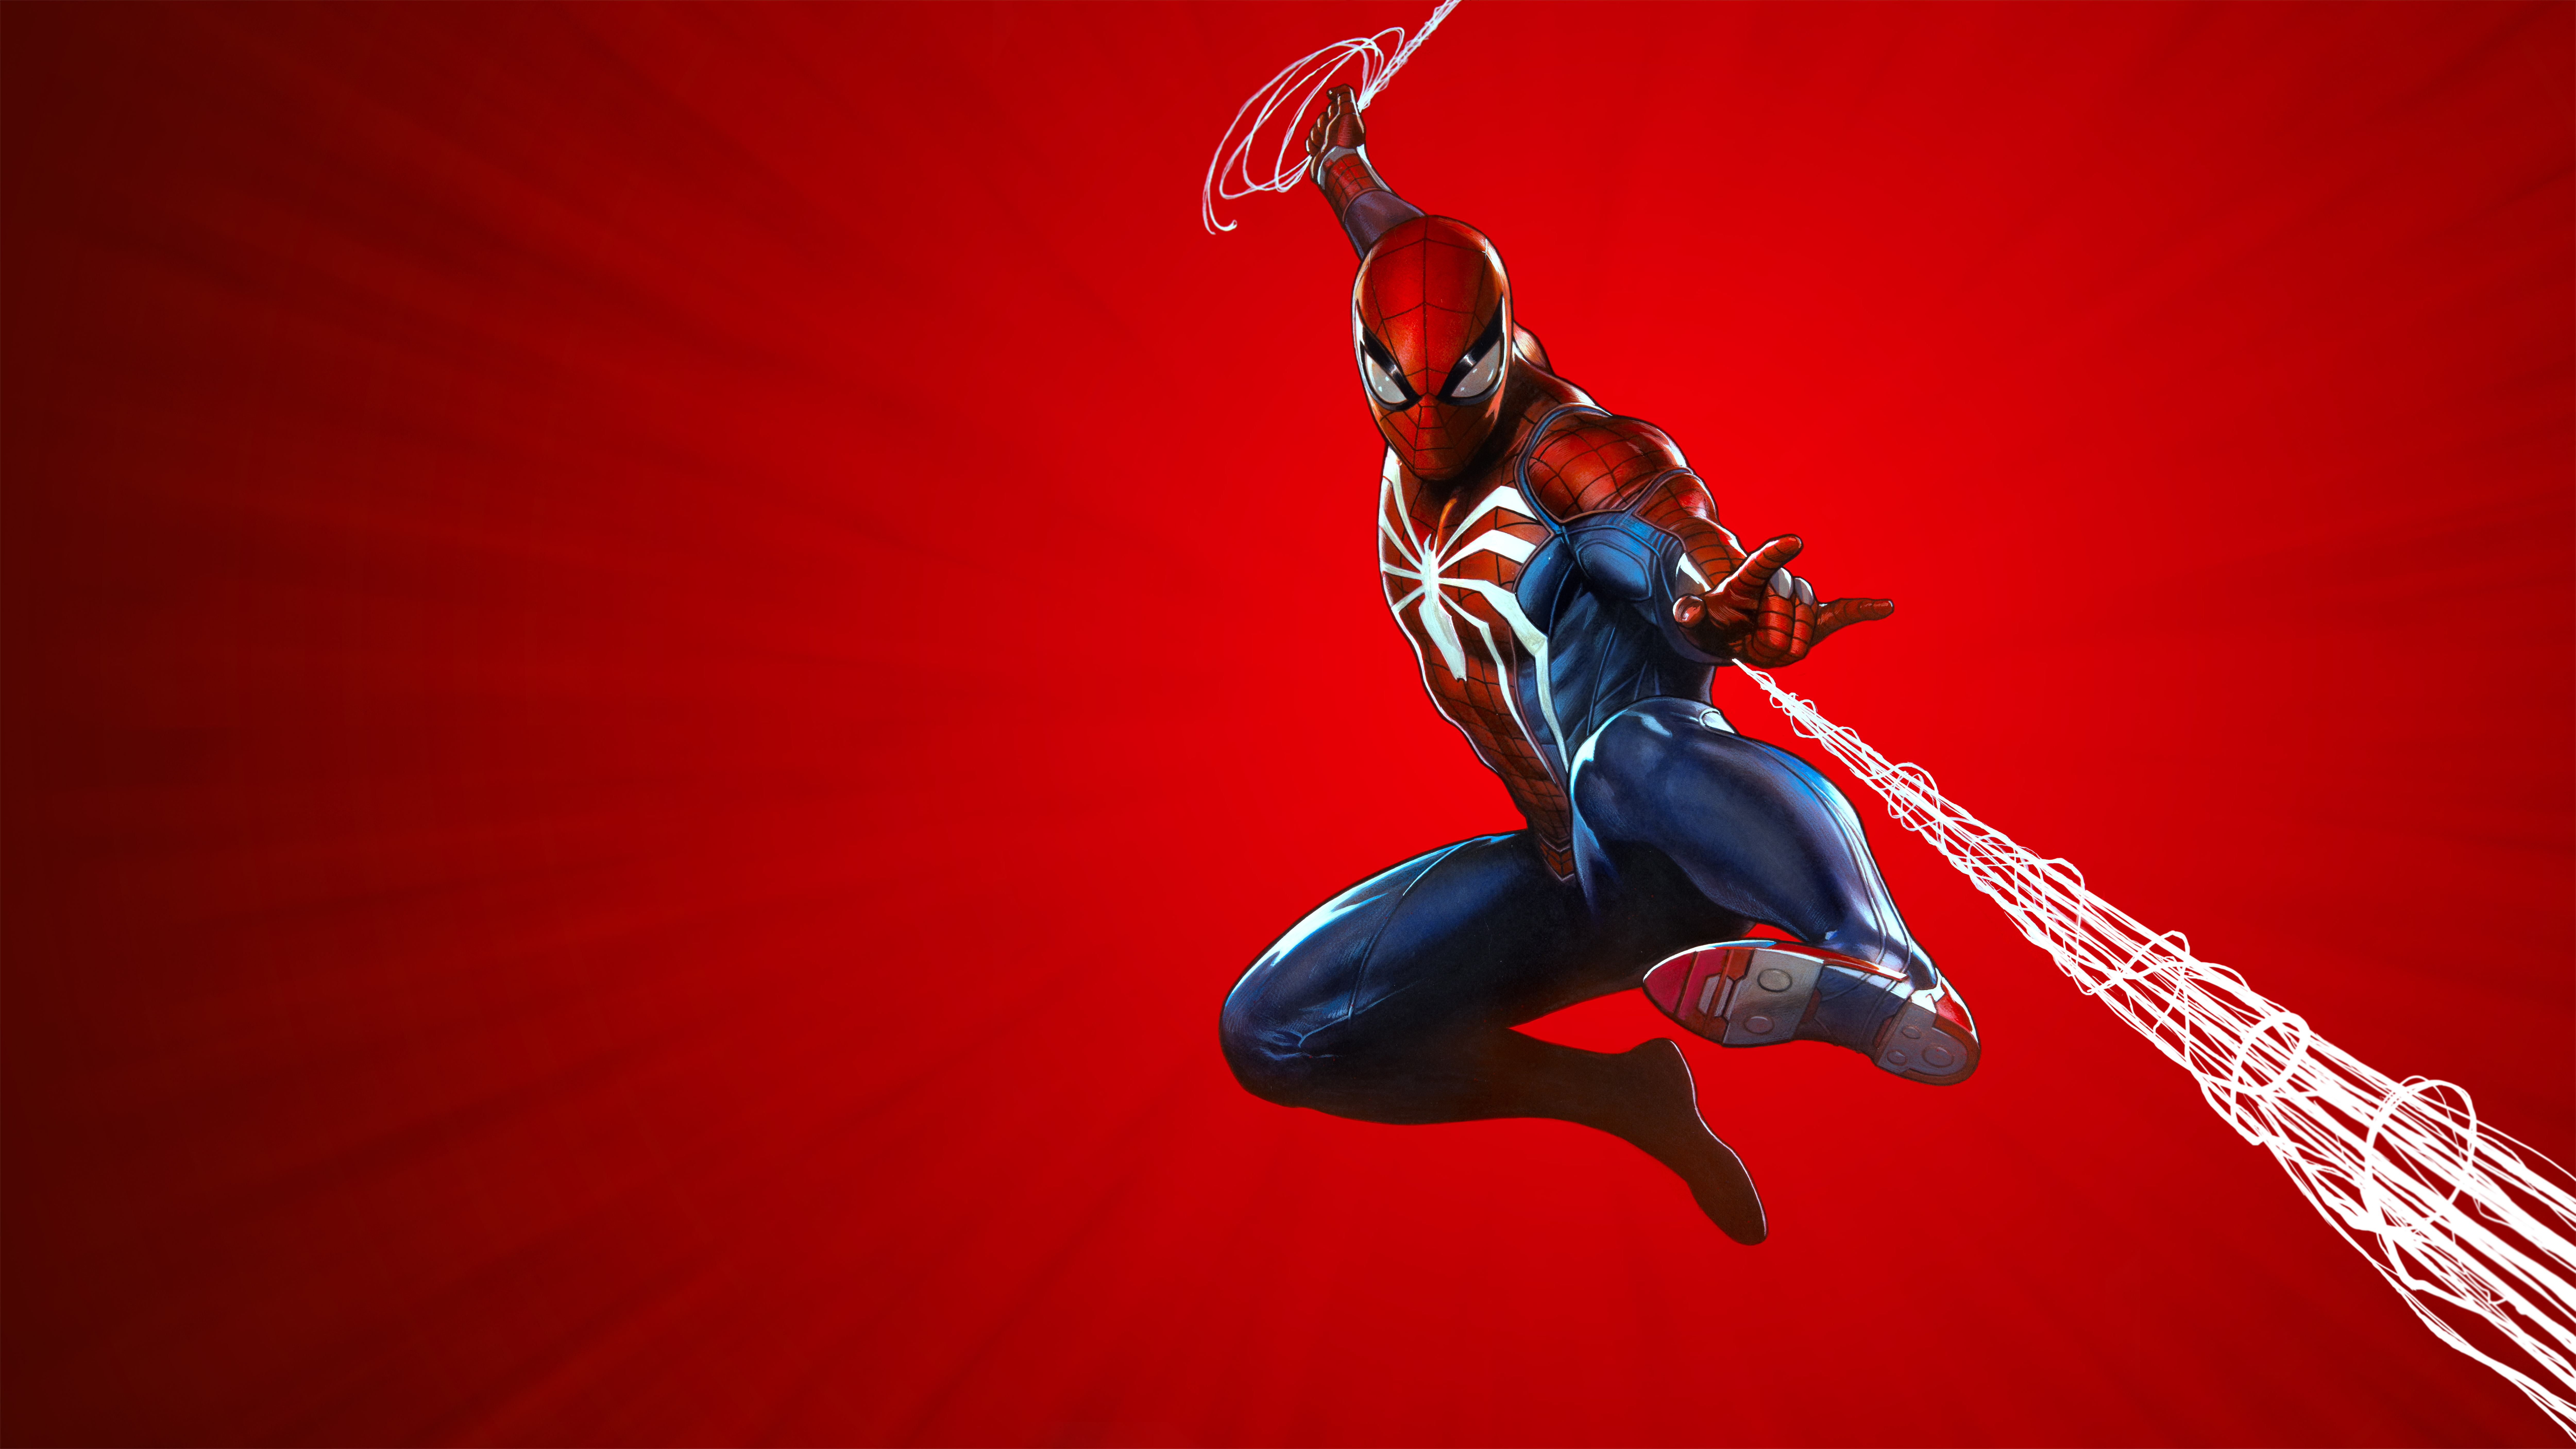 Marvels Spider Man PS4 Theme Art 10k